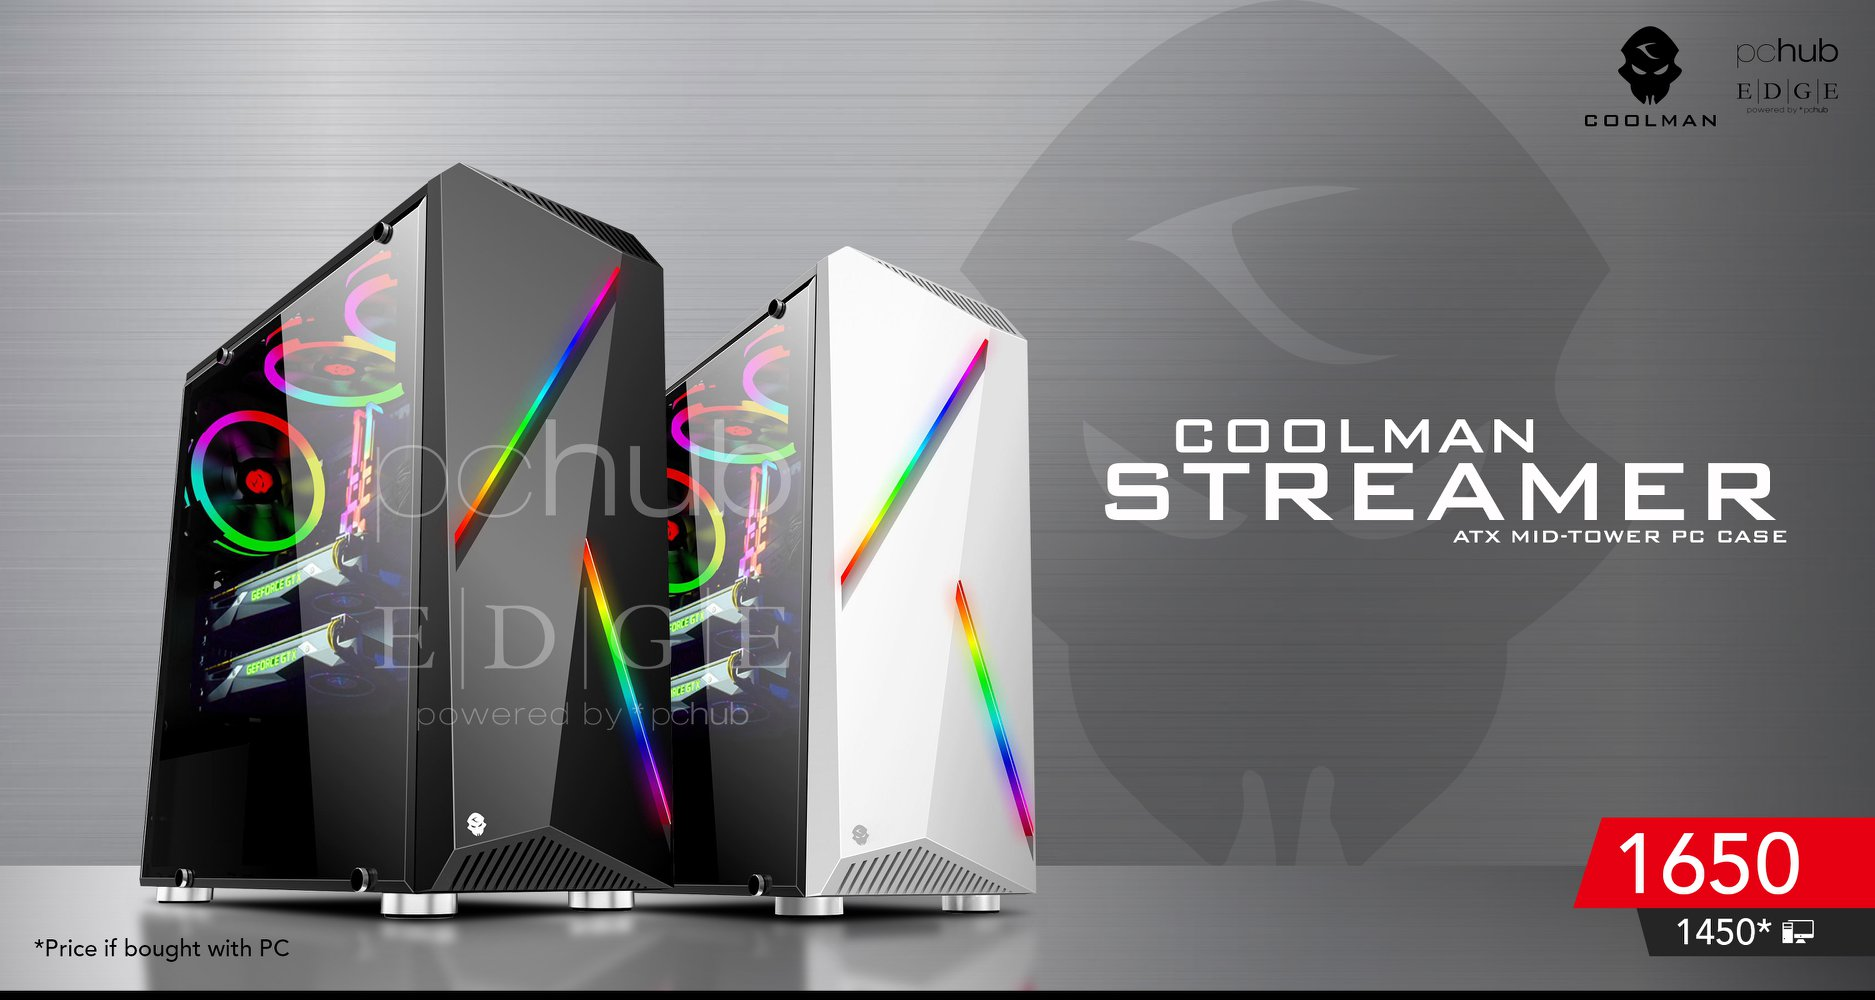 Php 35k Gaming PC Build Guide - coolman streamer 35k pc